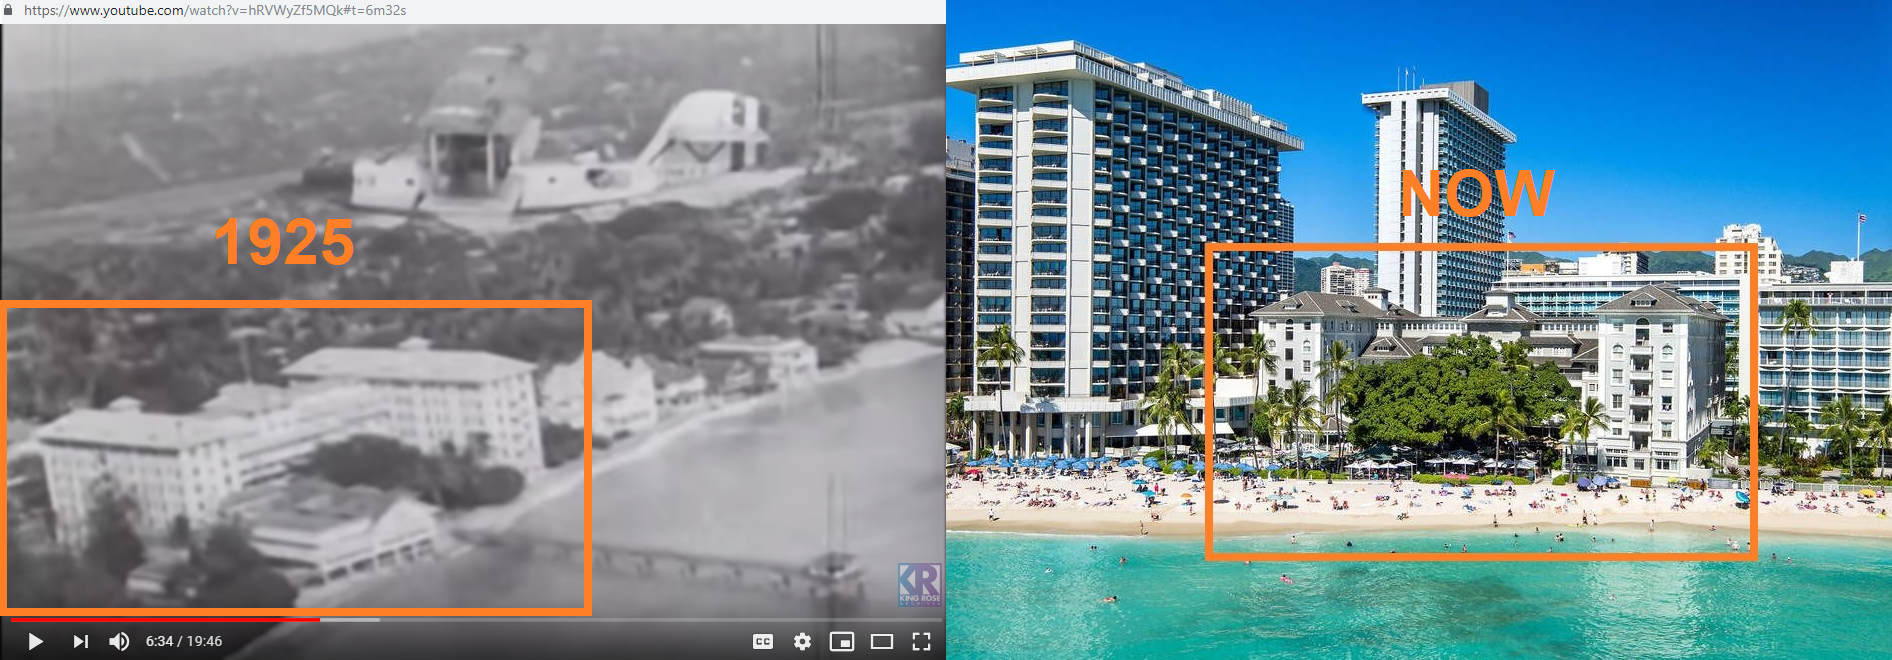 Moana Surfrider Hotel in Honolulu, 1925 vs now